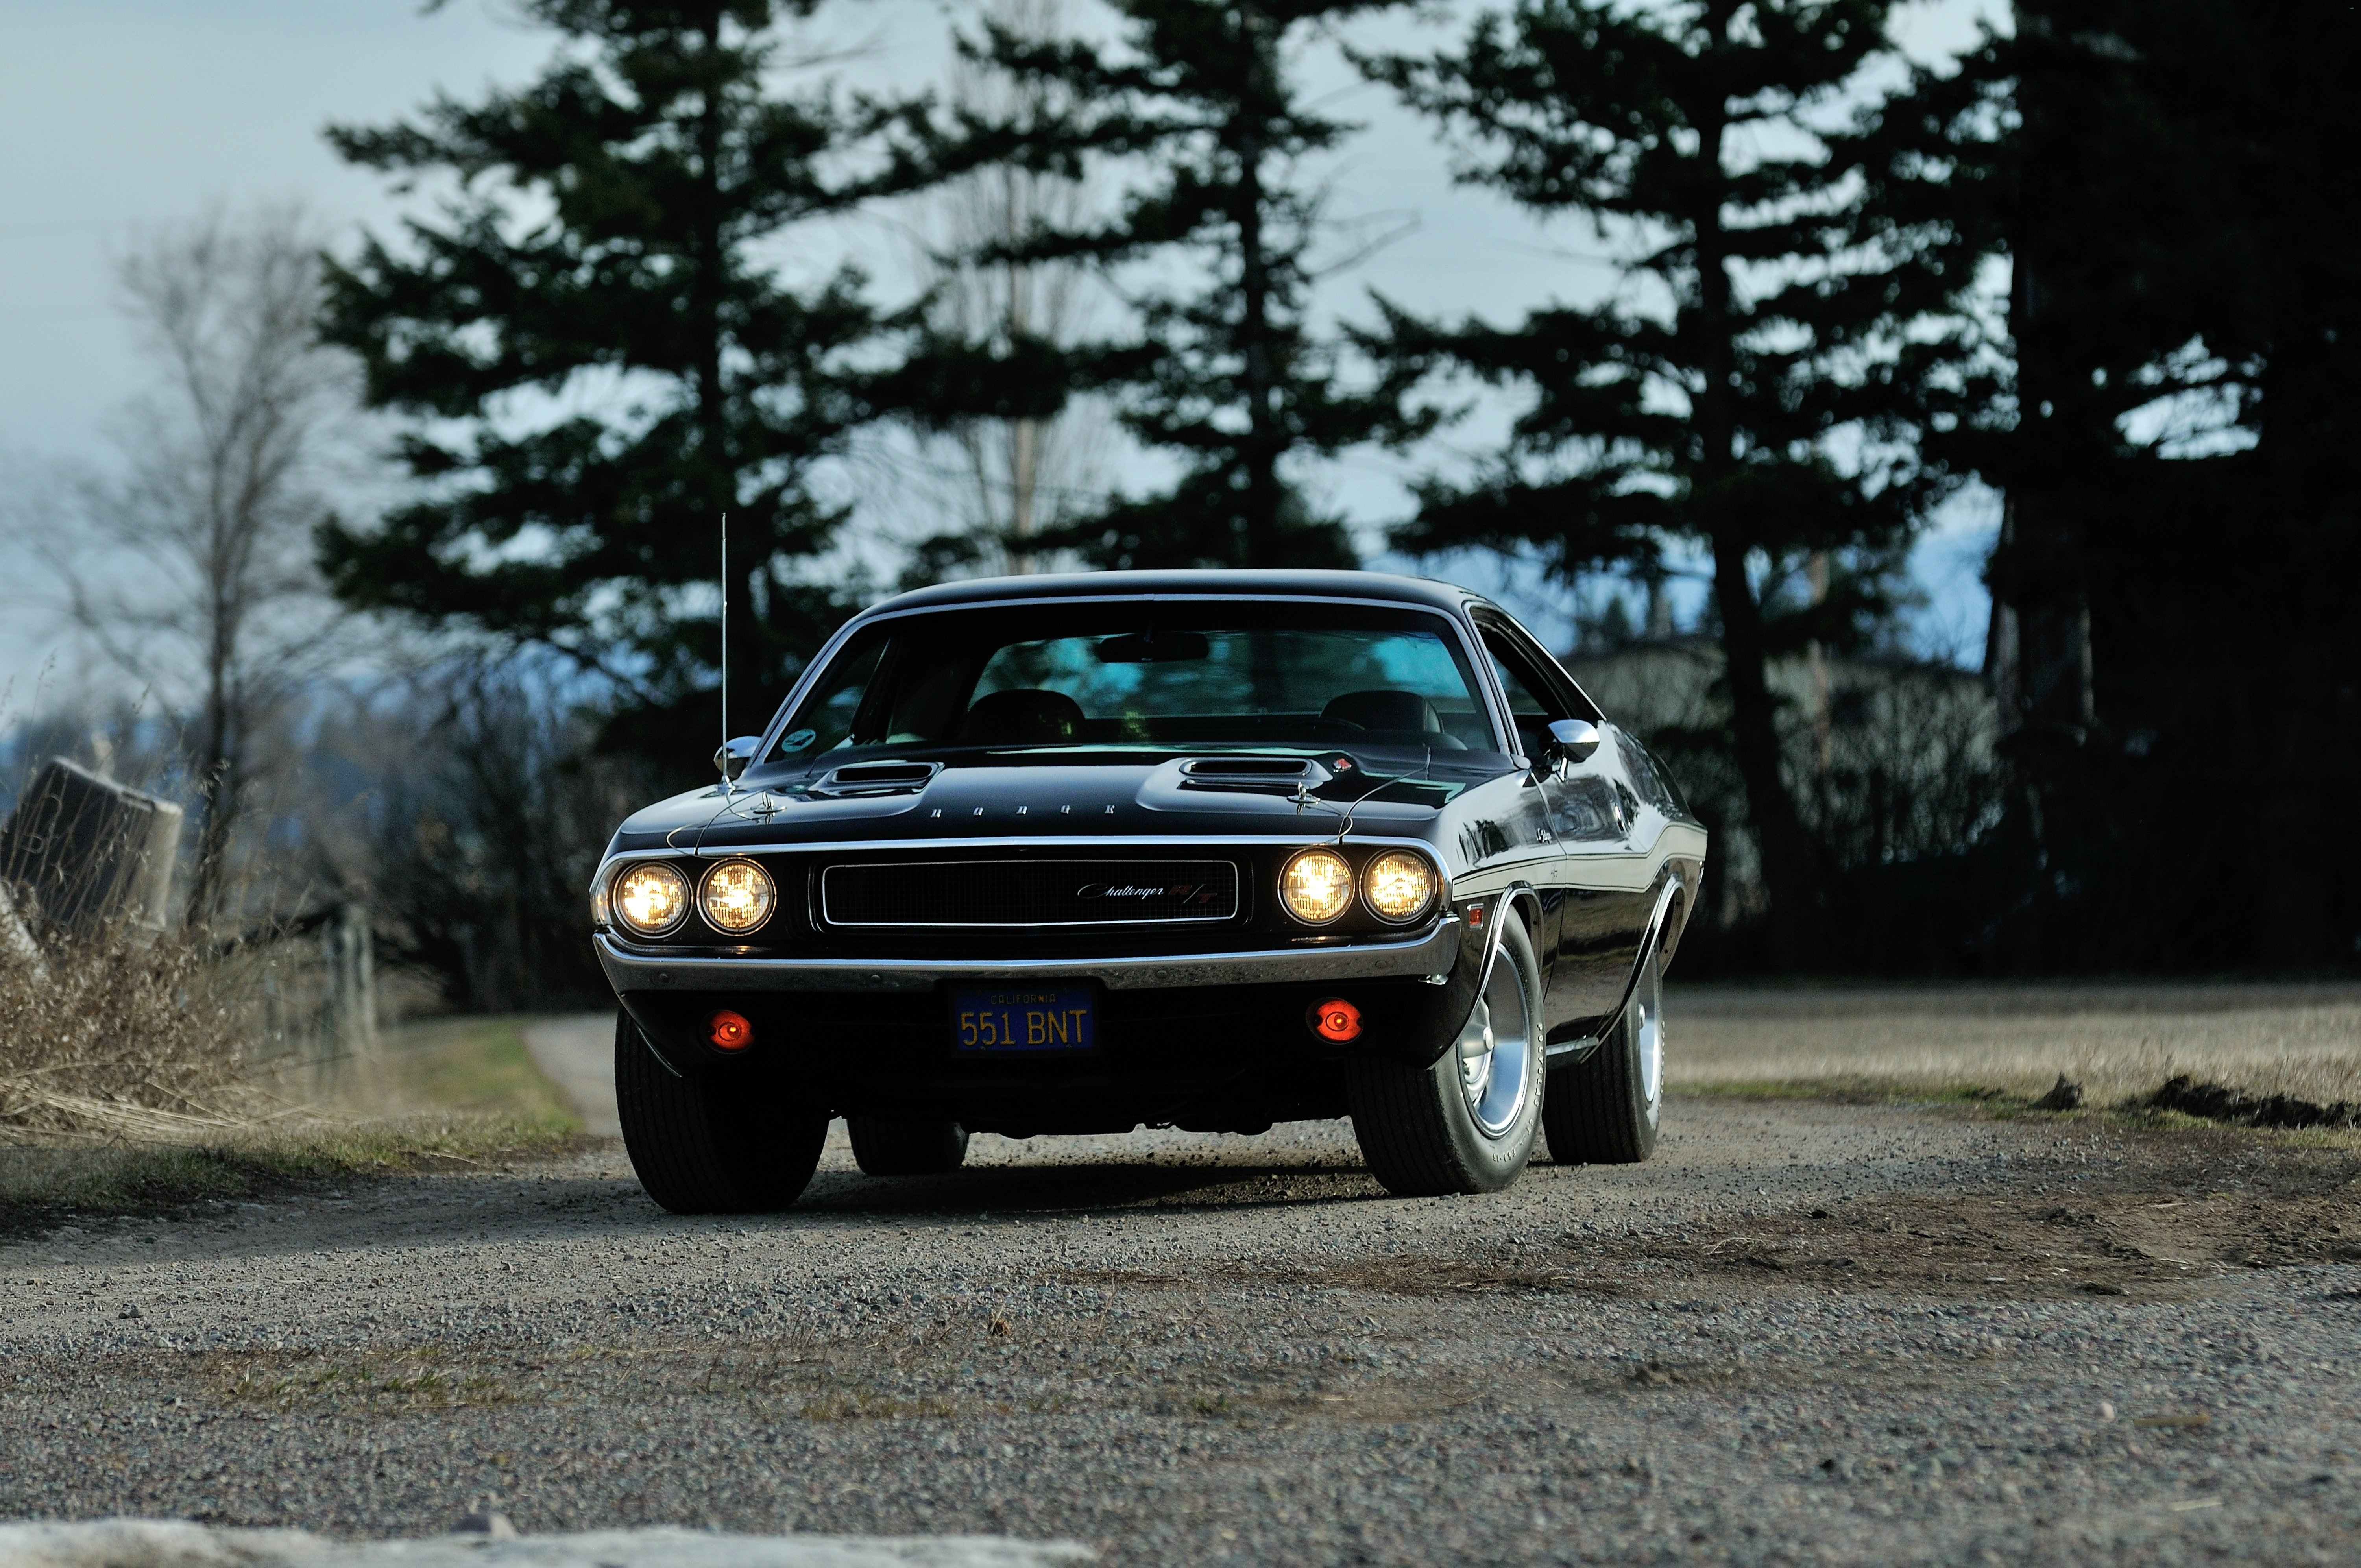 Fast And Furious 7 Cars Wallpapers Hd 1970 Dodge Challenger Rt 440 Six Pack Muscle Classic Old